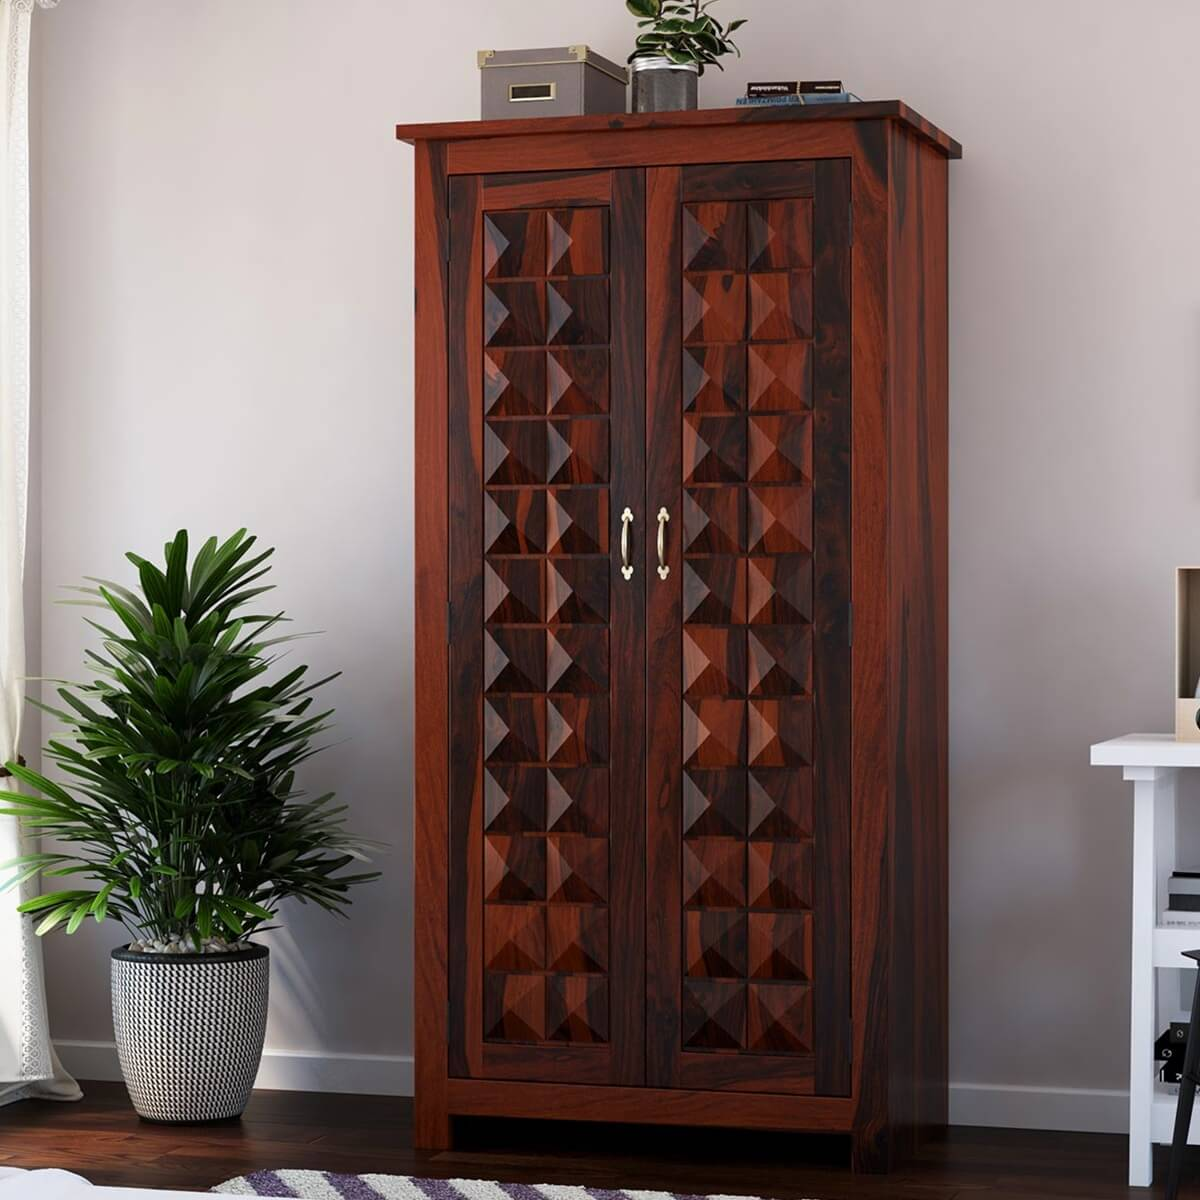 Clatonia Pyramid Studded Solid Wood Wardrobe Armoire With Drawers